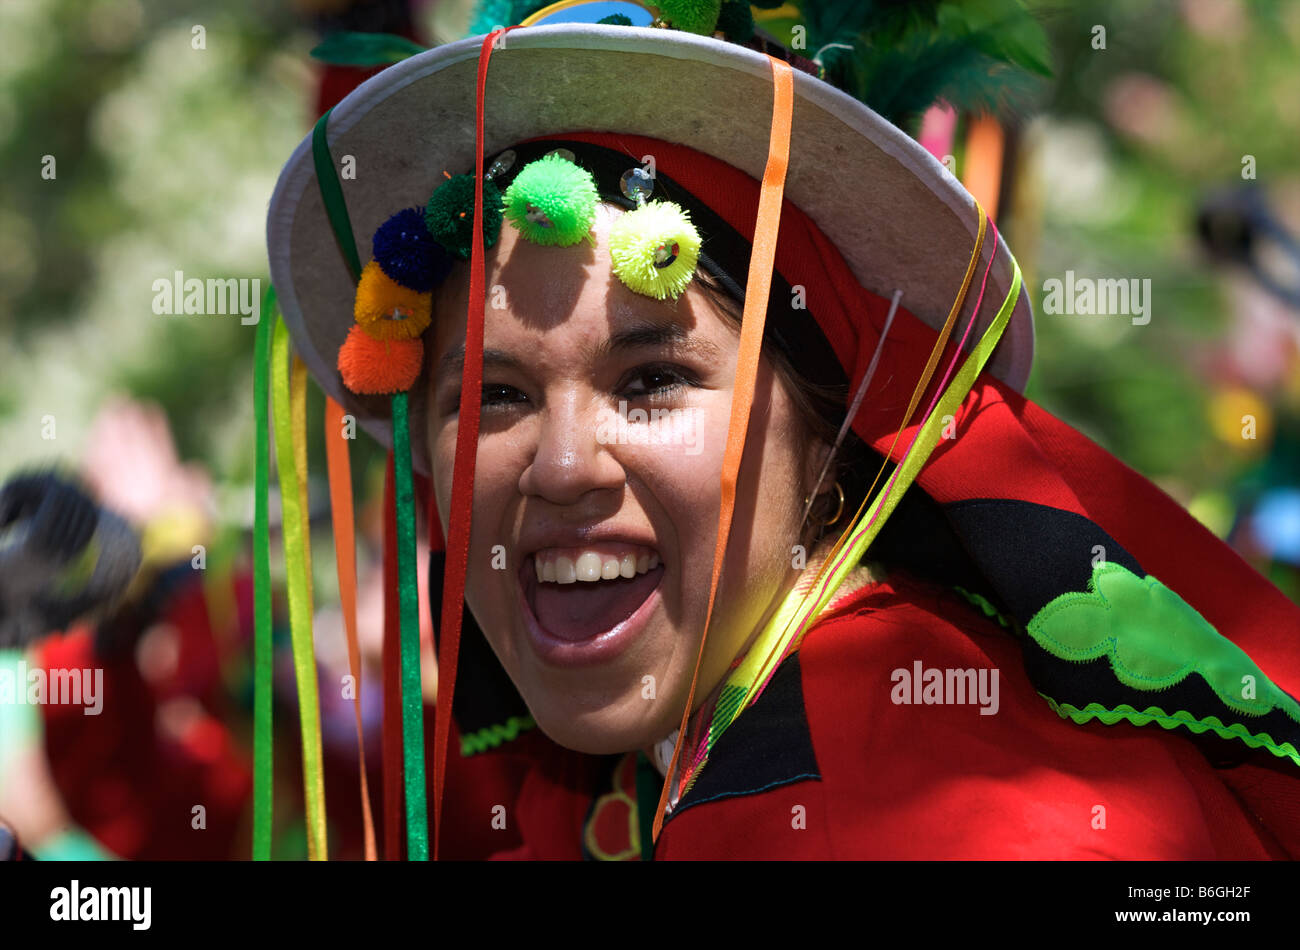 Laughing Girl in red costume with hat and ribbons - Stock Image